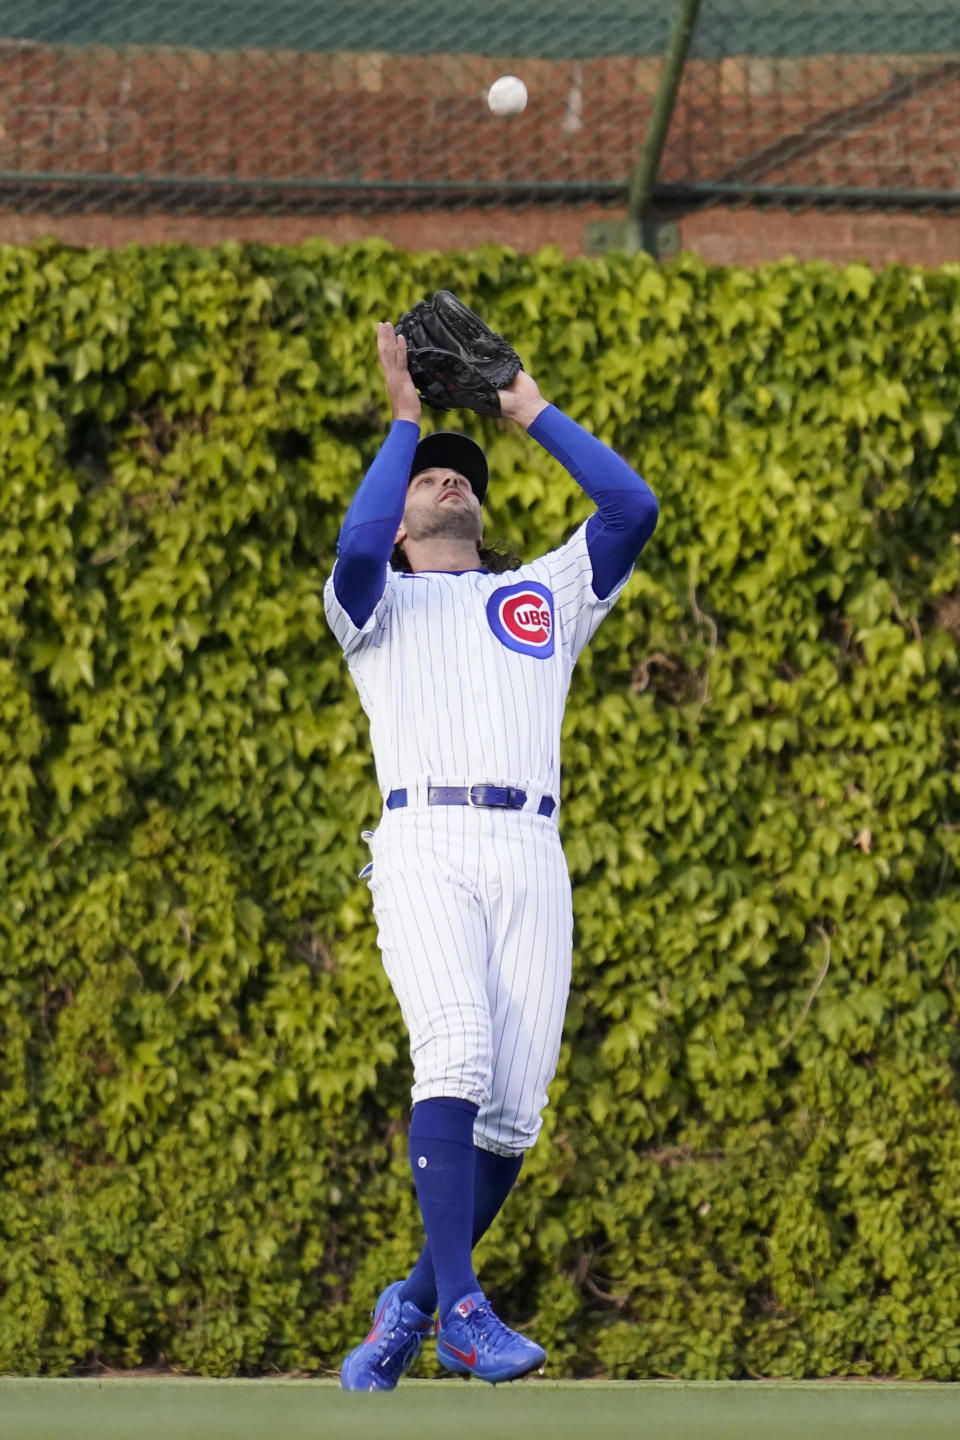 Chicago Cubs center fielder Jake Marisnick catches a fly ball by Los Angeles Dodgers' Corey Seager during the first inning of a baseball game in Chicago, Wednesday, May 5, 2021. (AP Photo/Nam Y. Huh)